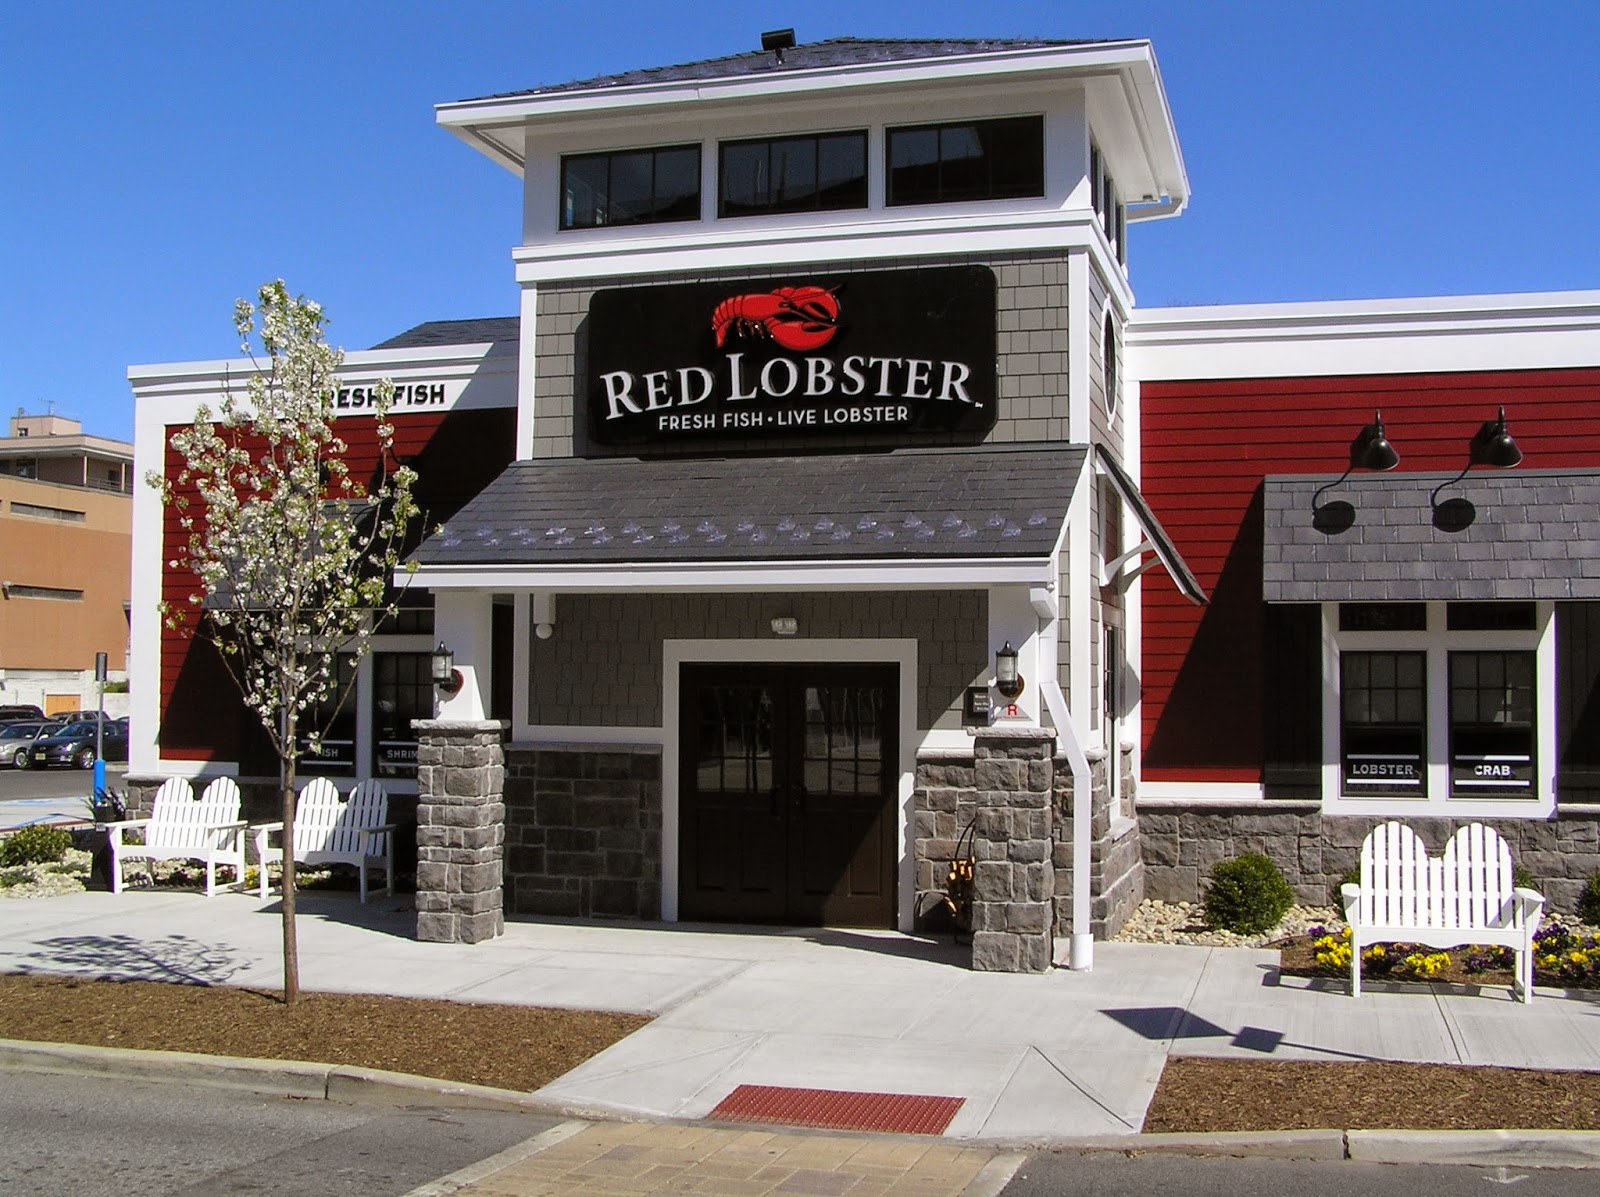 Printable Coupons In Store & Coupon Codes: Red Lobster Coupons